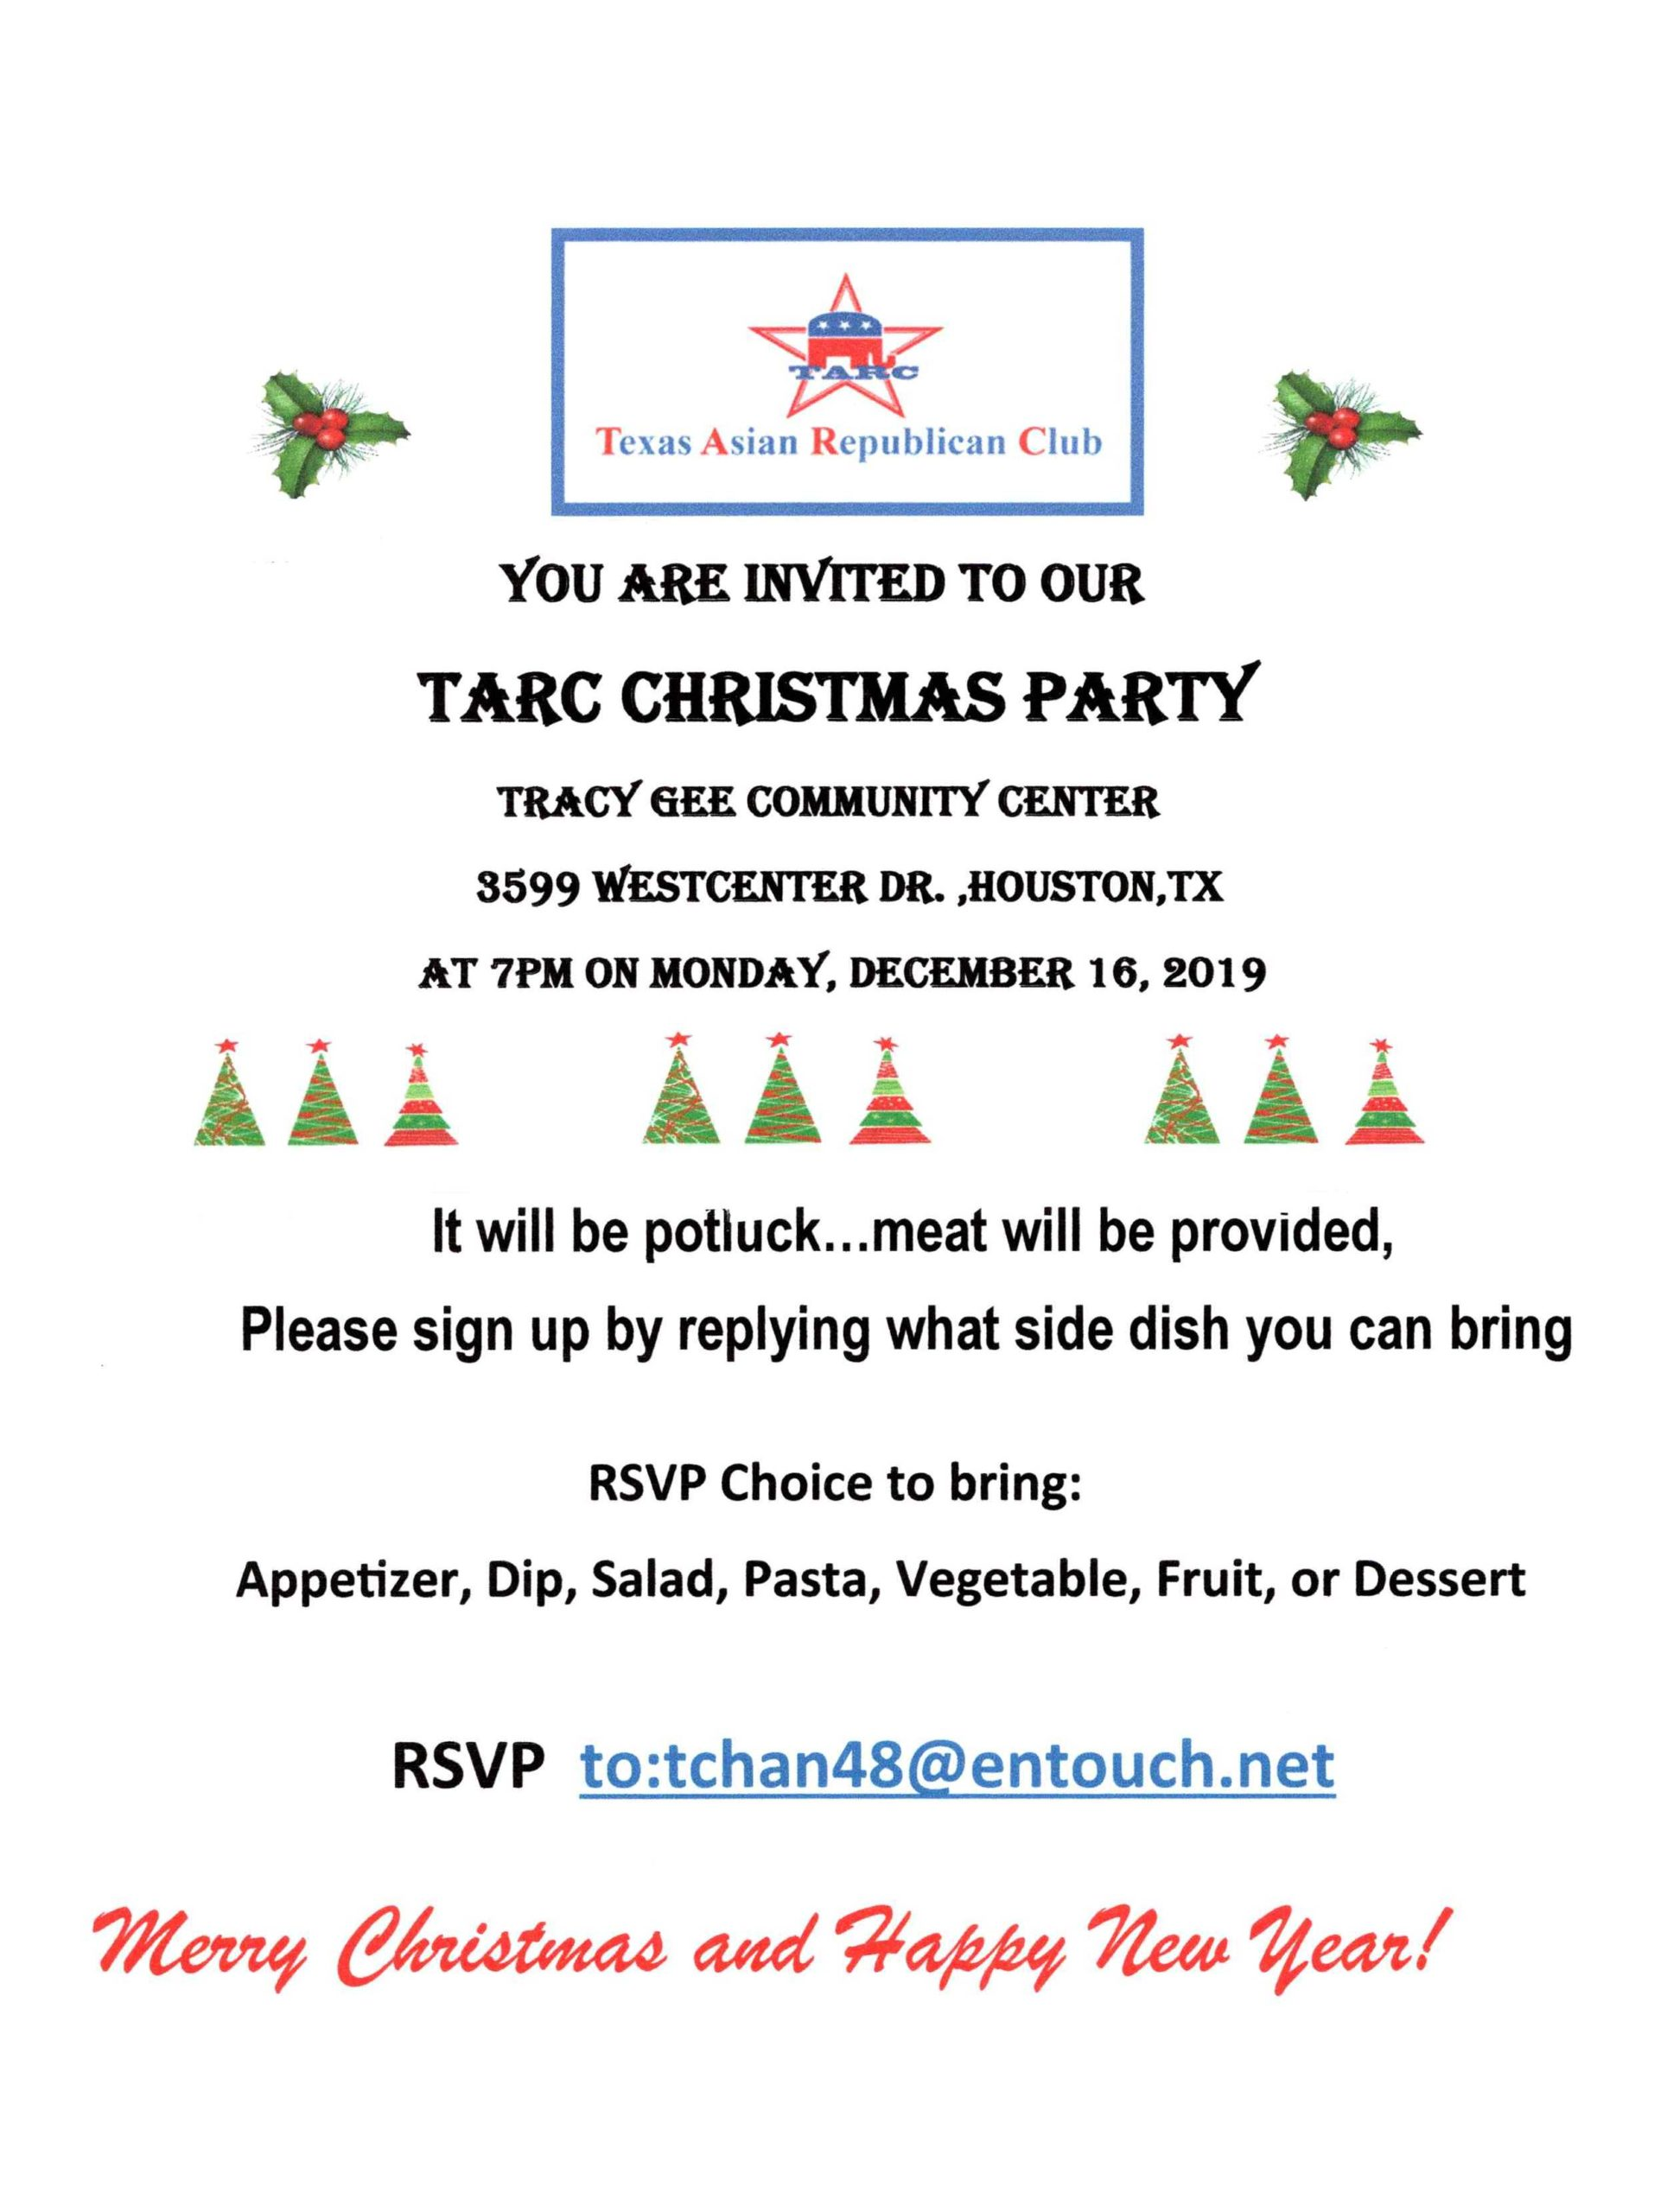 TARC Christmas Party